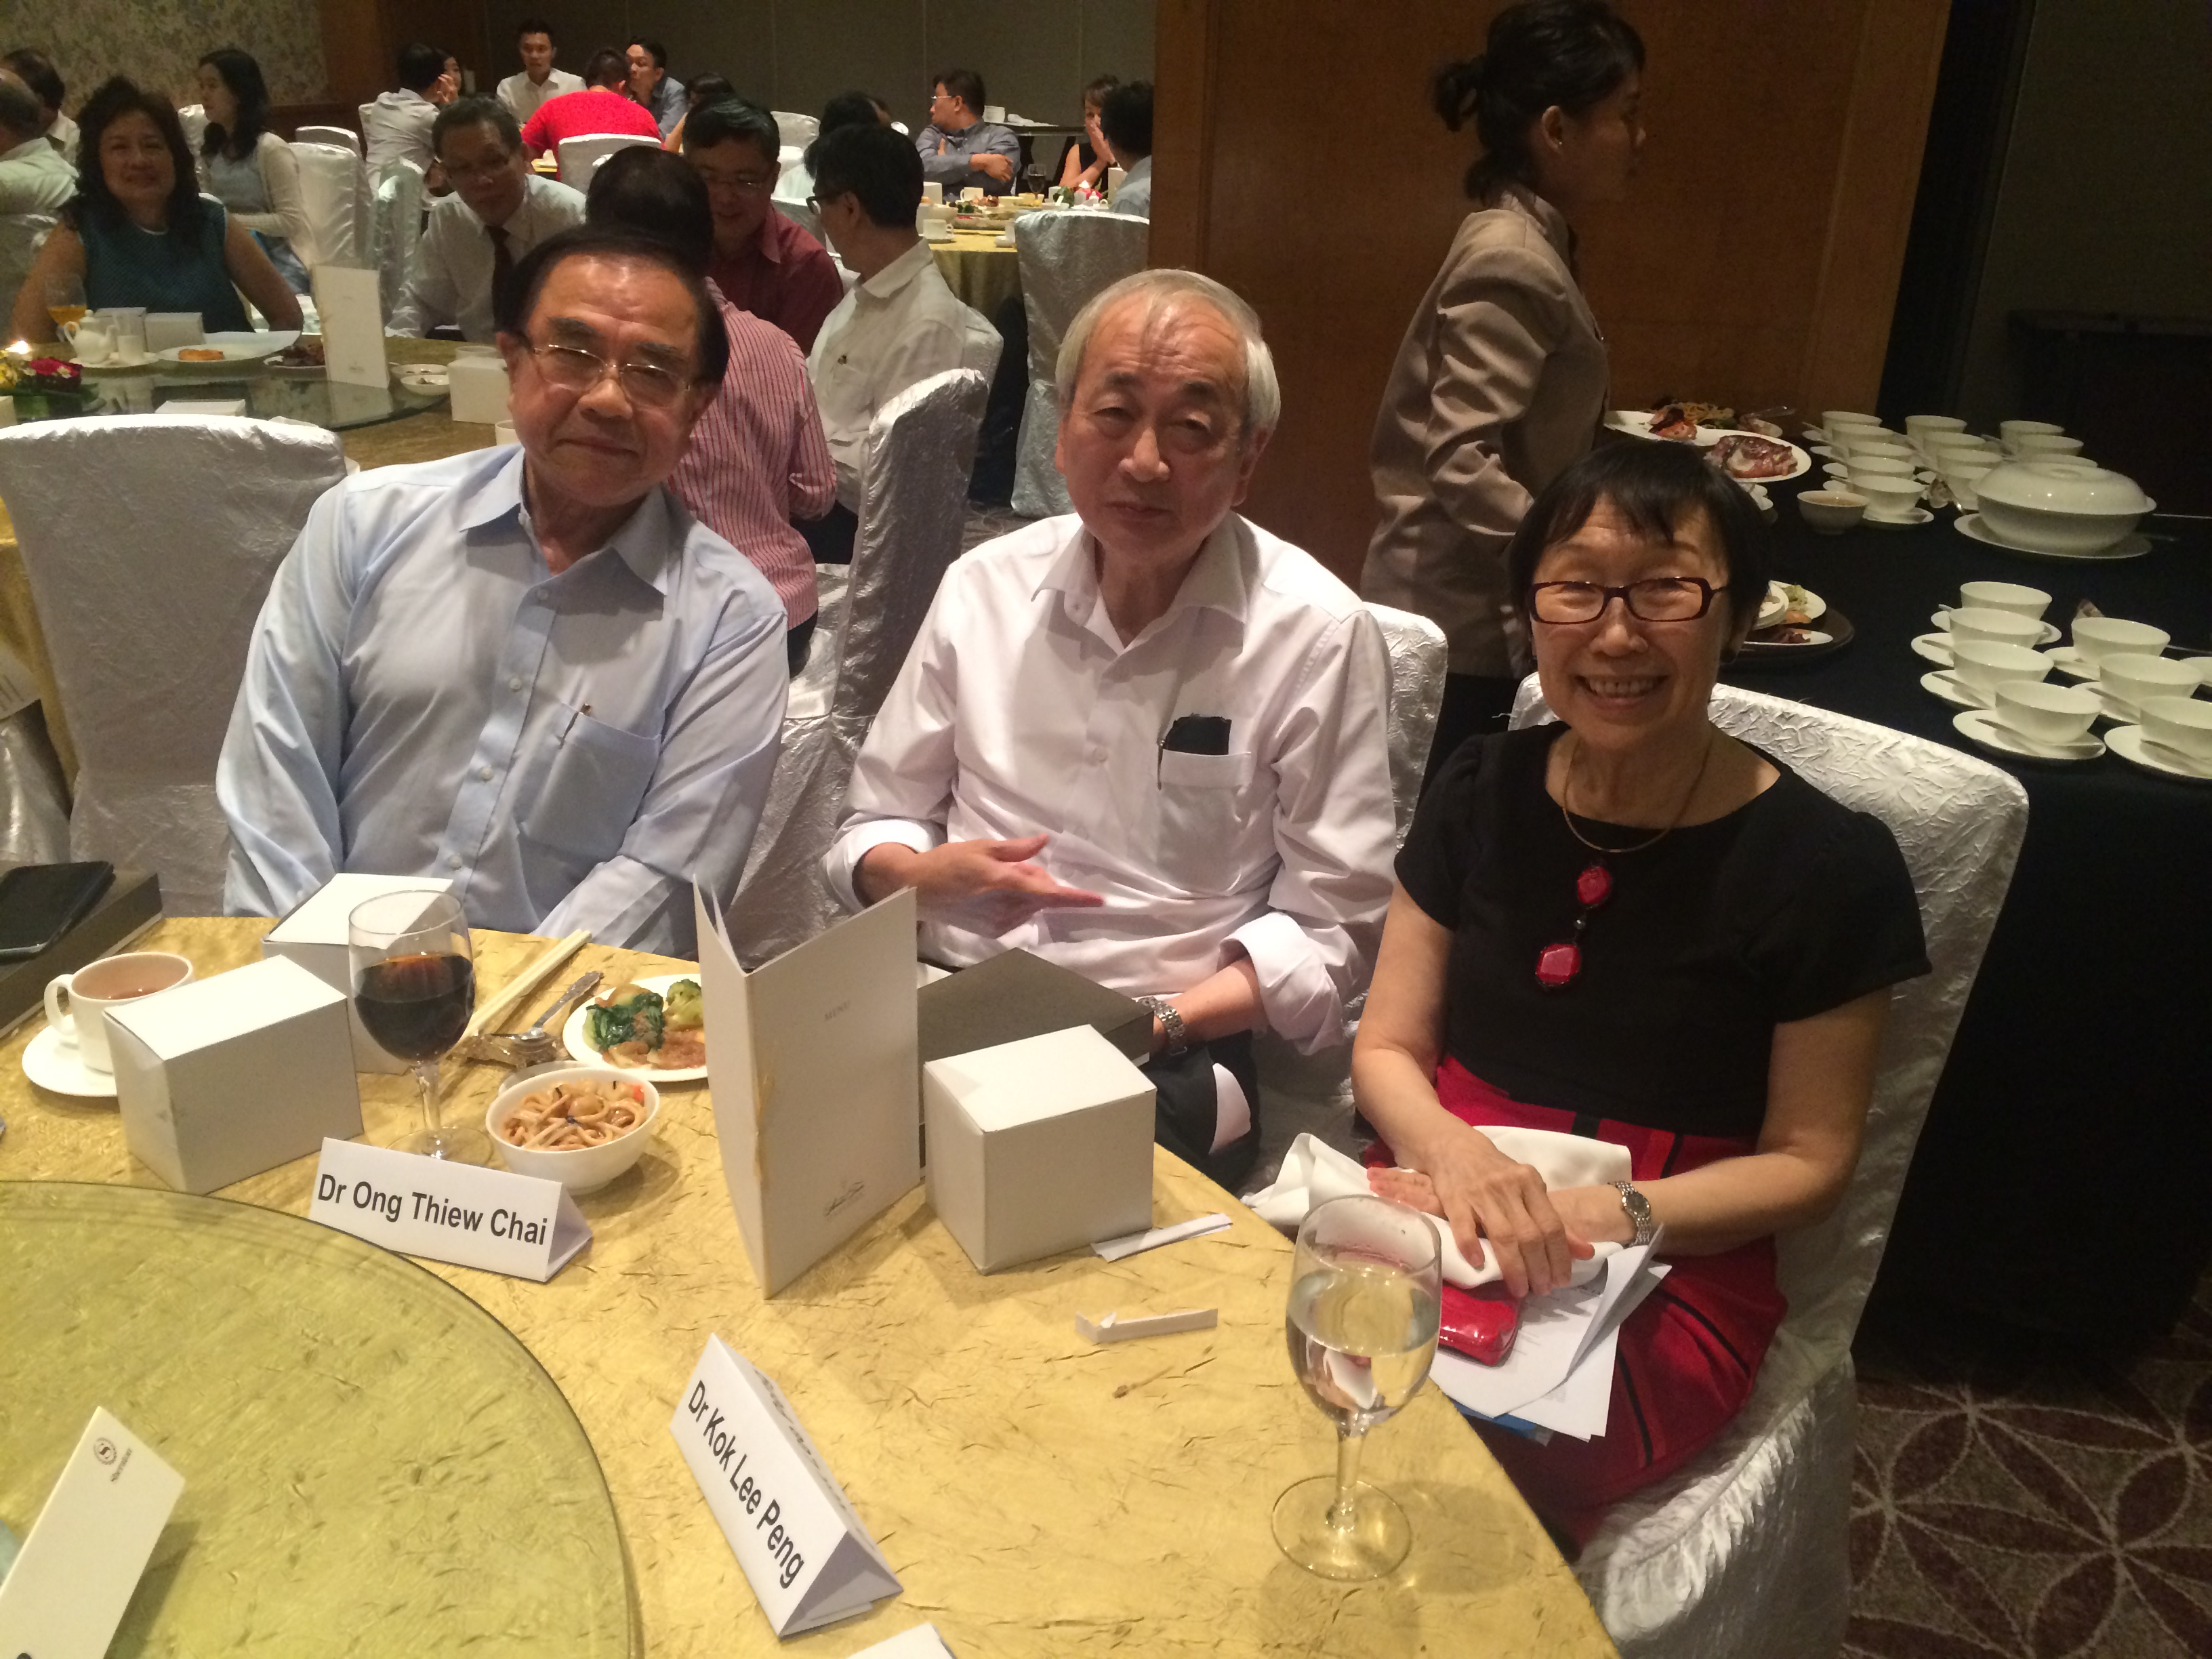 Three-Distinguished-Psychiatrist-Award-winners-on-one-table